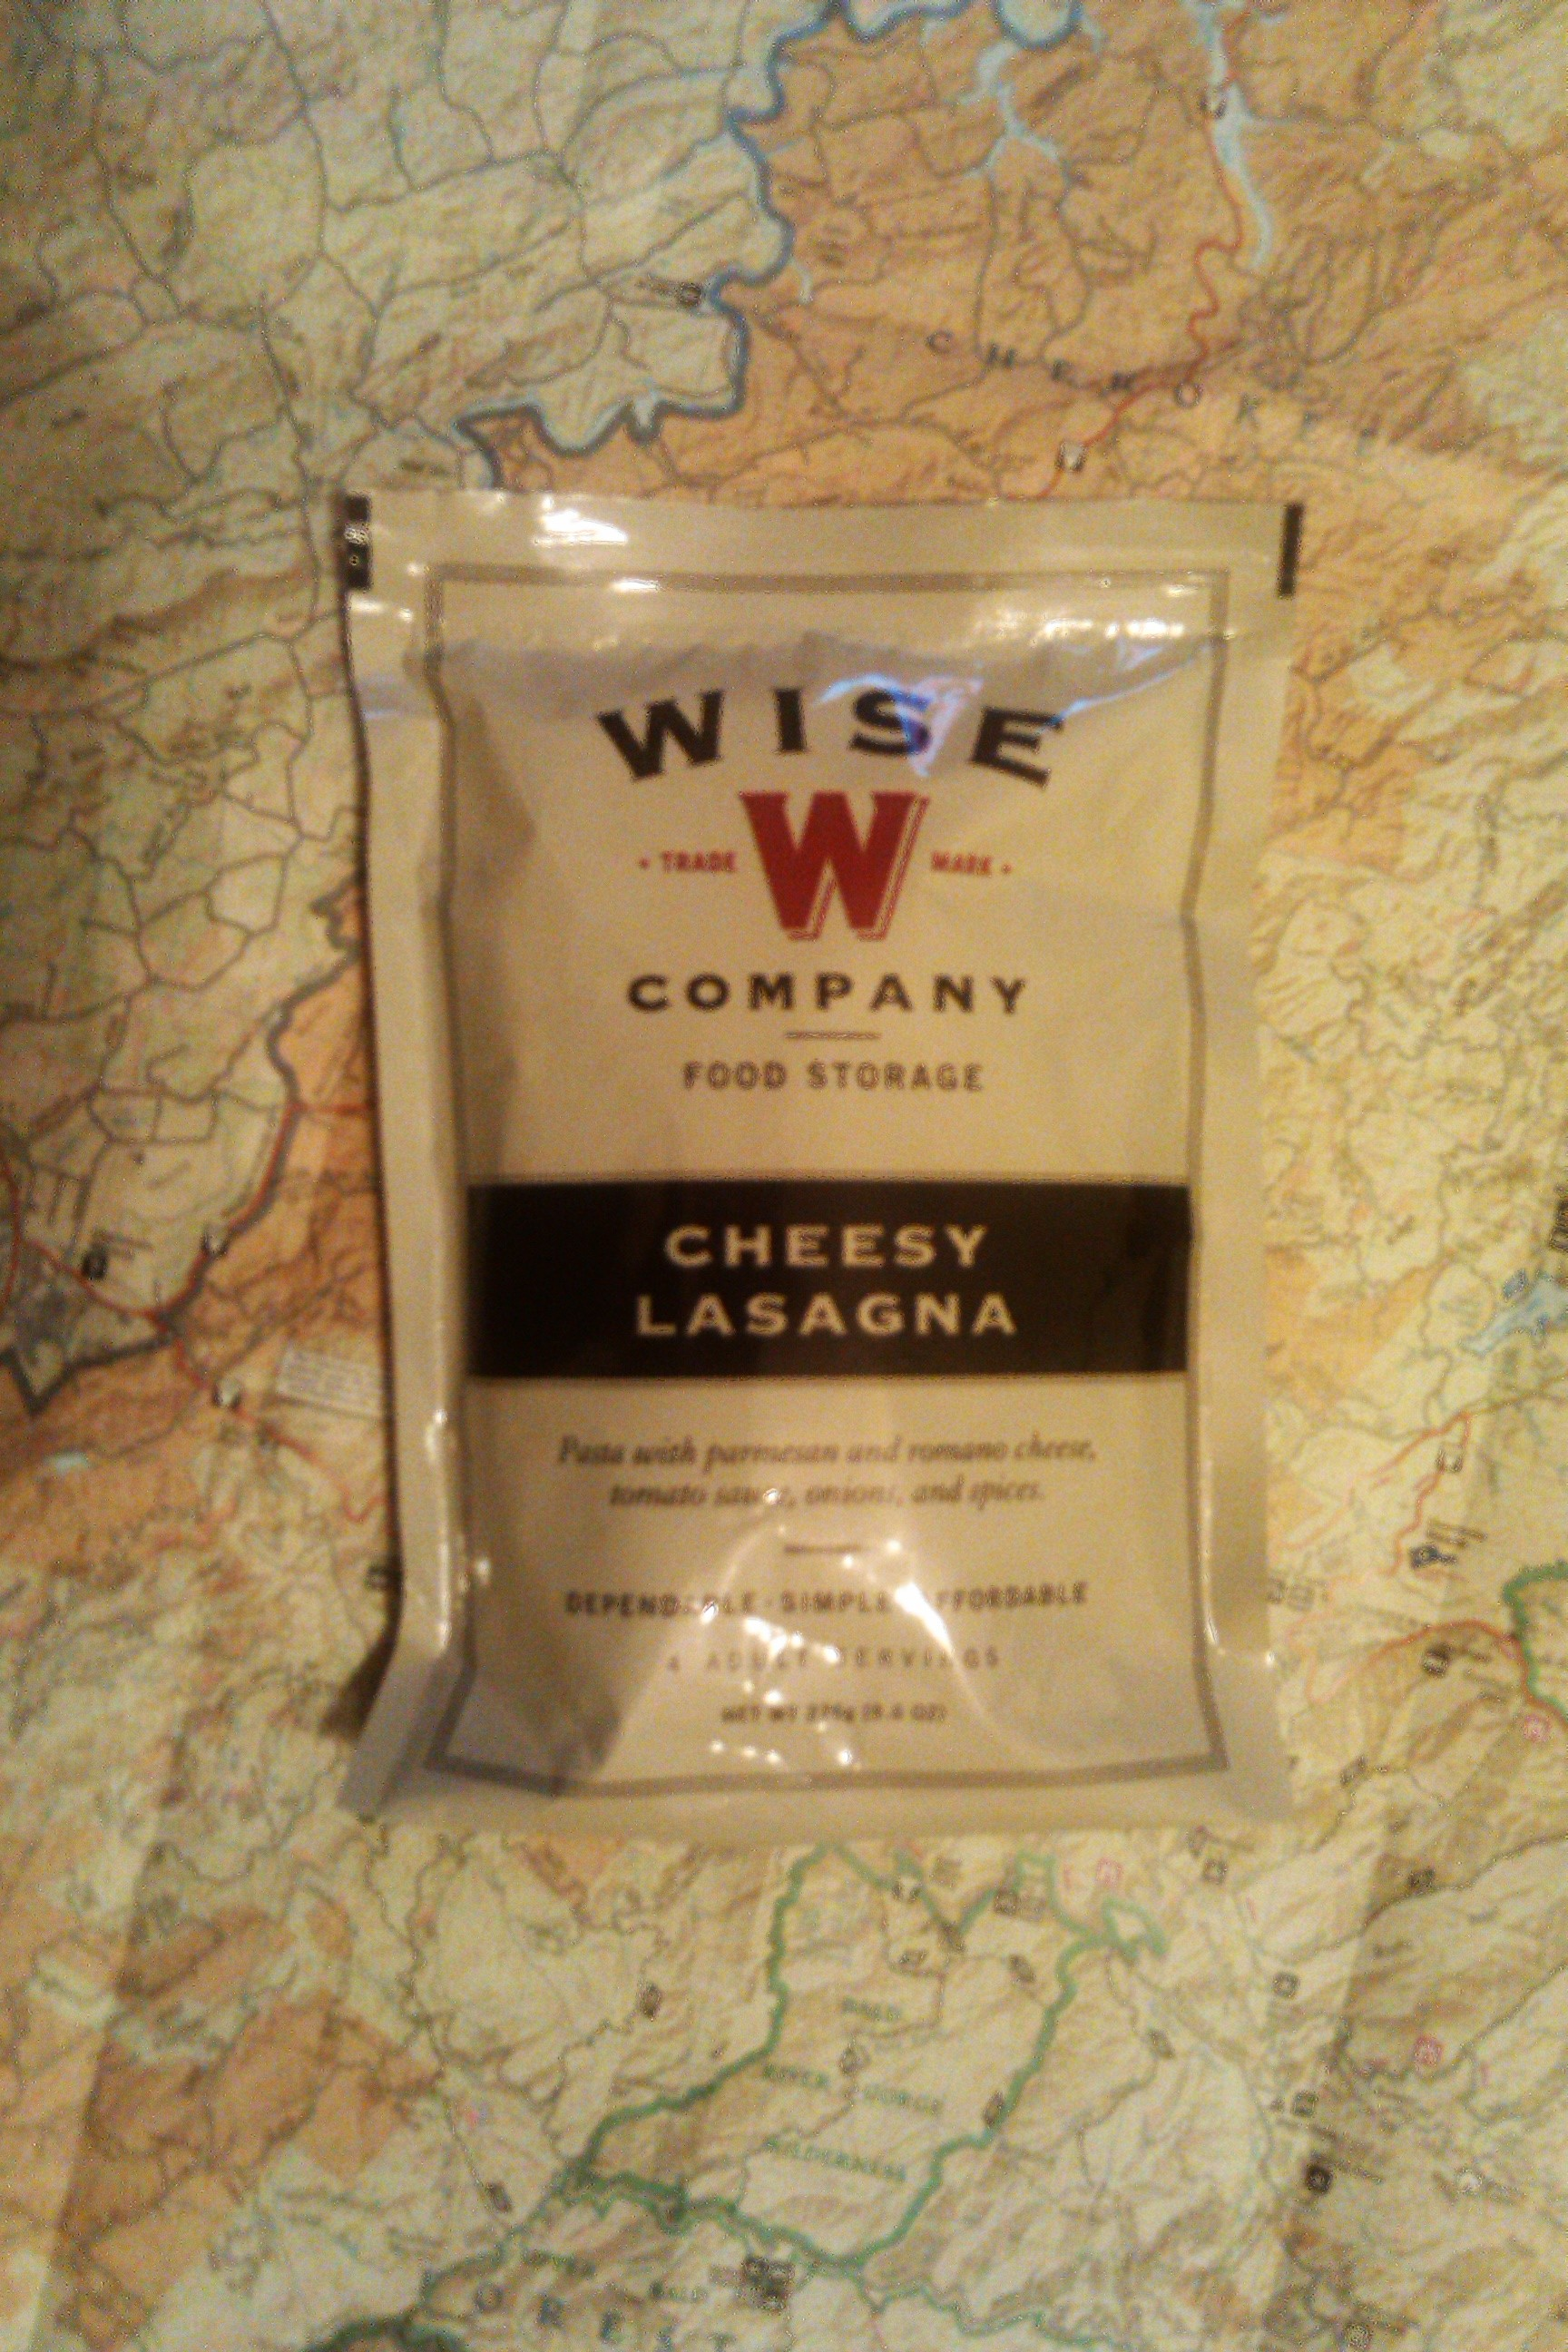 Wise Foods is a company that specializes in ready-made food storage meals (with emphasis on the storage). These freeze-dried / dehydrated meals are packaged ... & Wise Foods Free Sample | Sticku0027s Blog